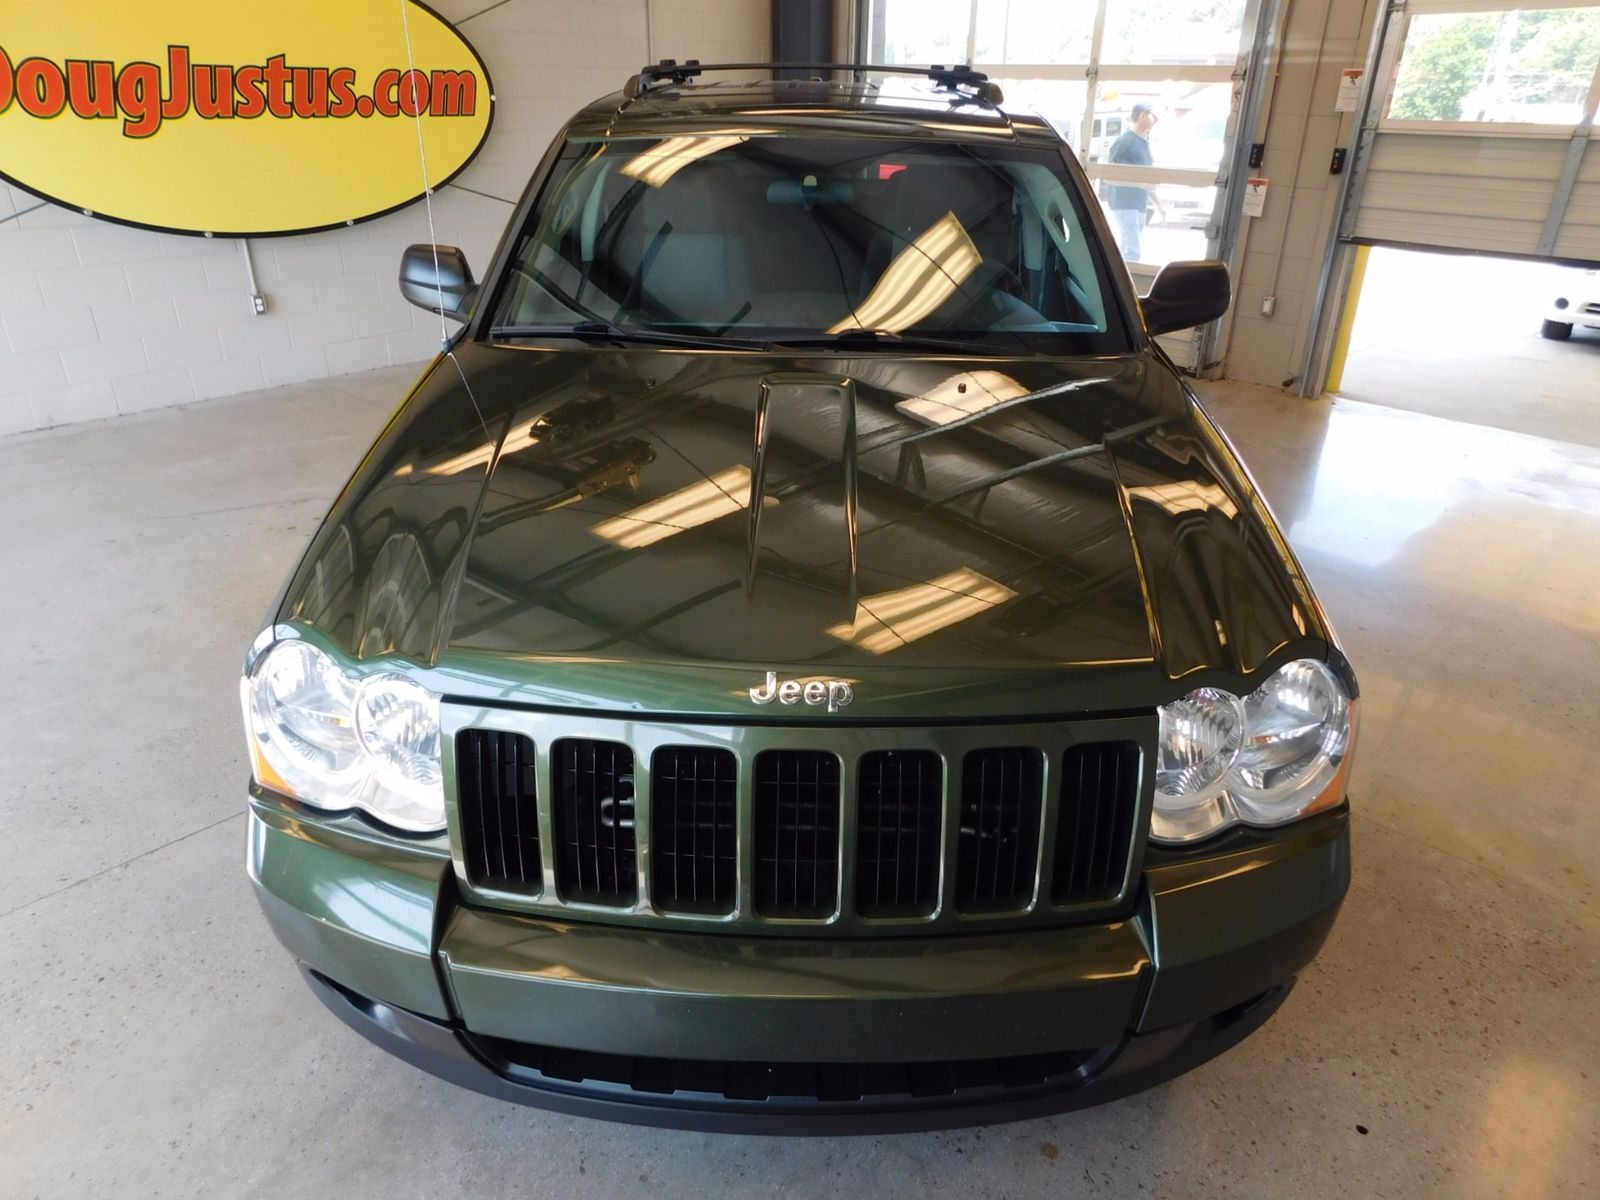 100 jeep laredo 2009 2009 jeep grand cherokee wk for Used cars airport motor mile